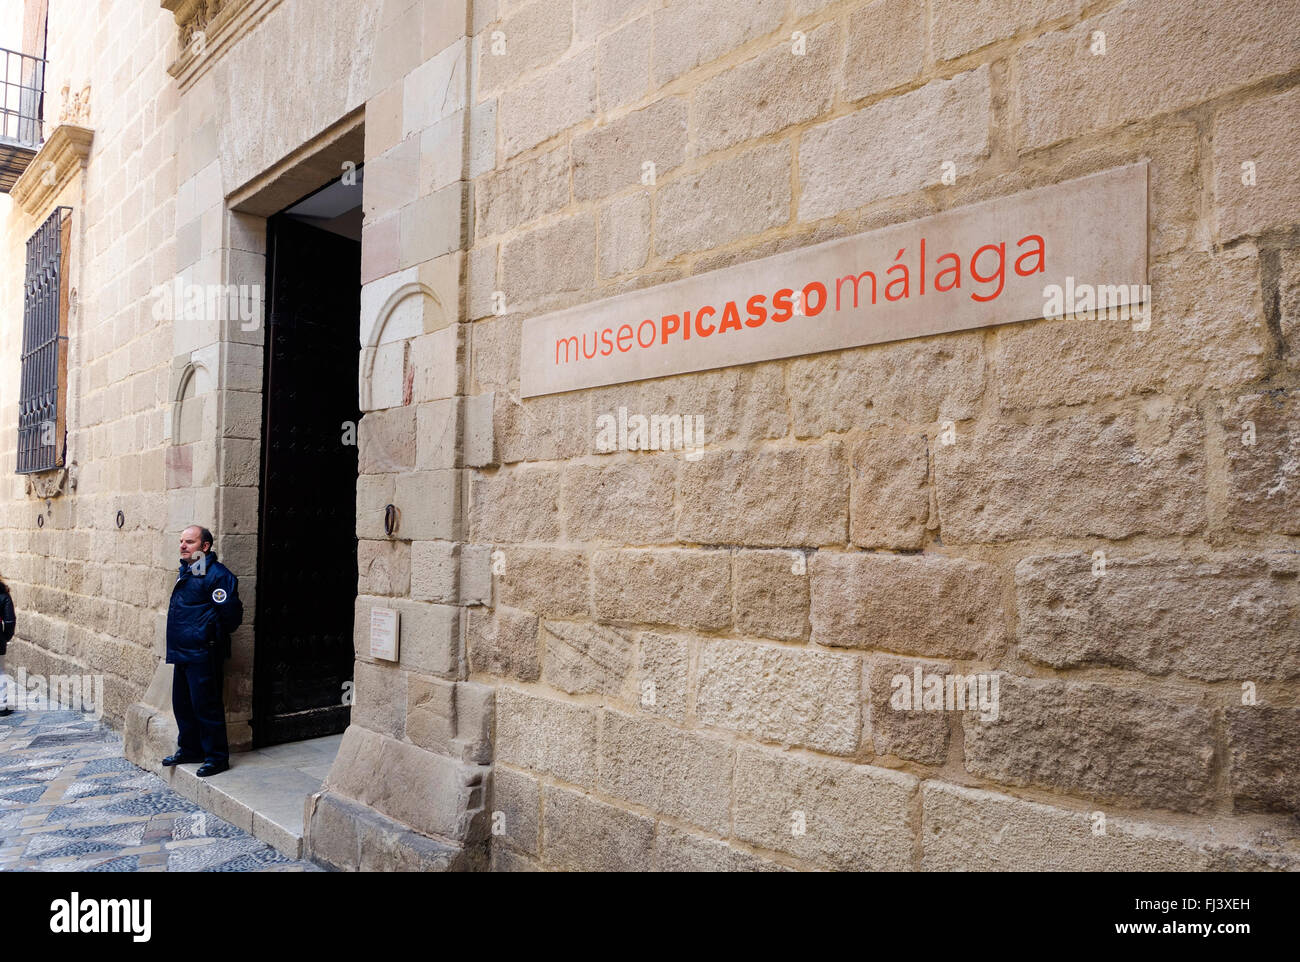 Museo Picasso Malaga.Guard Outside The Entrance Buenavista Palace Housing Museo Picasso